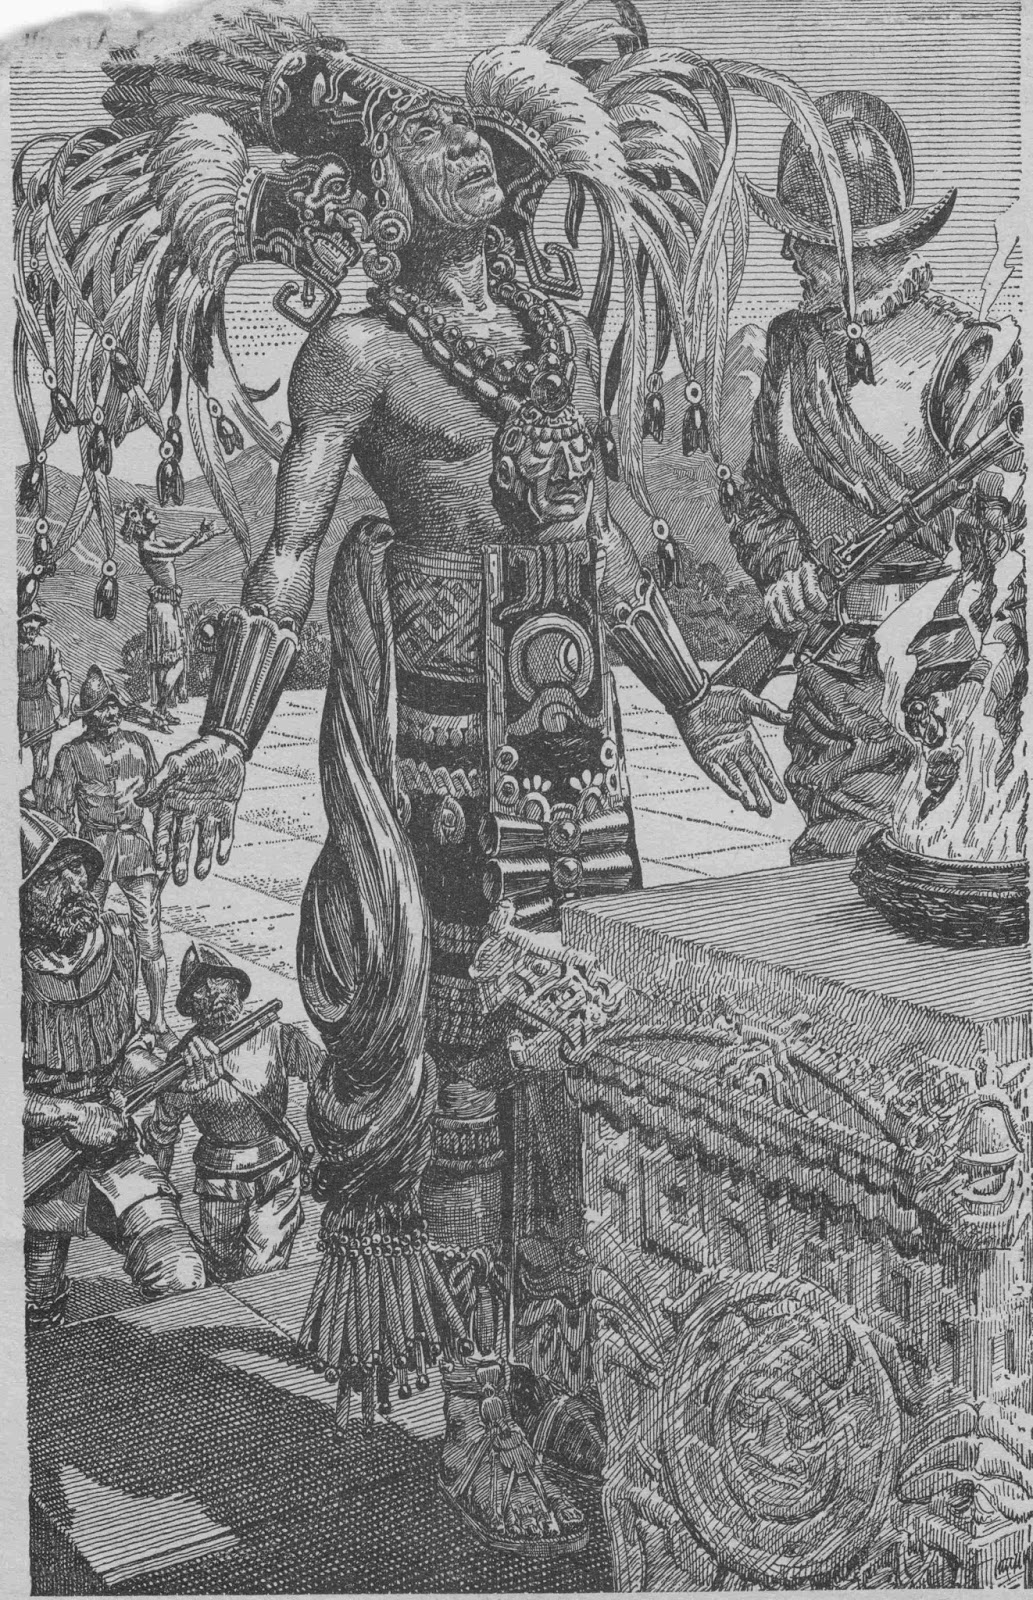 Illustration of Mayan priest in Adventure magazine